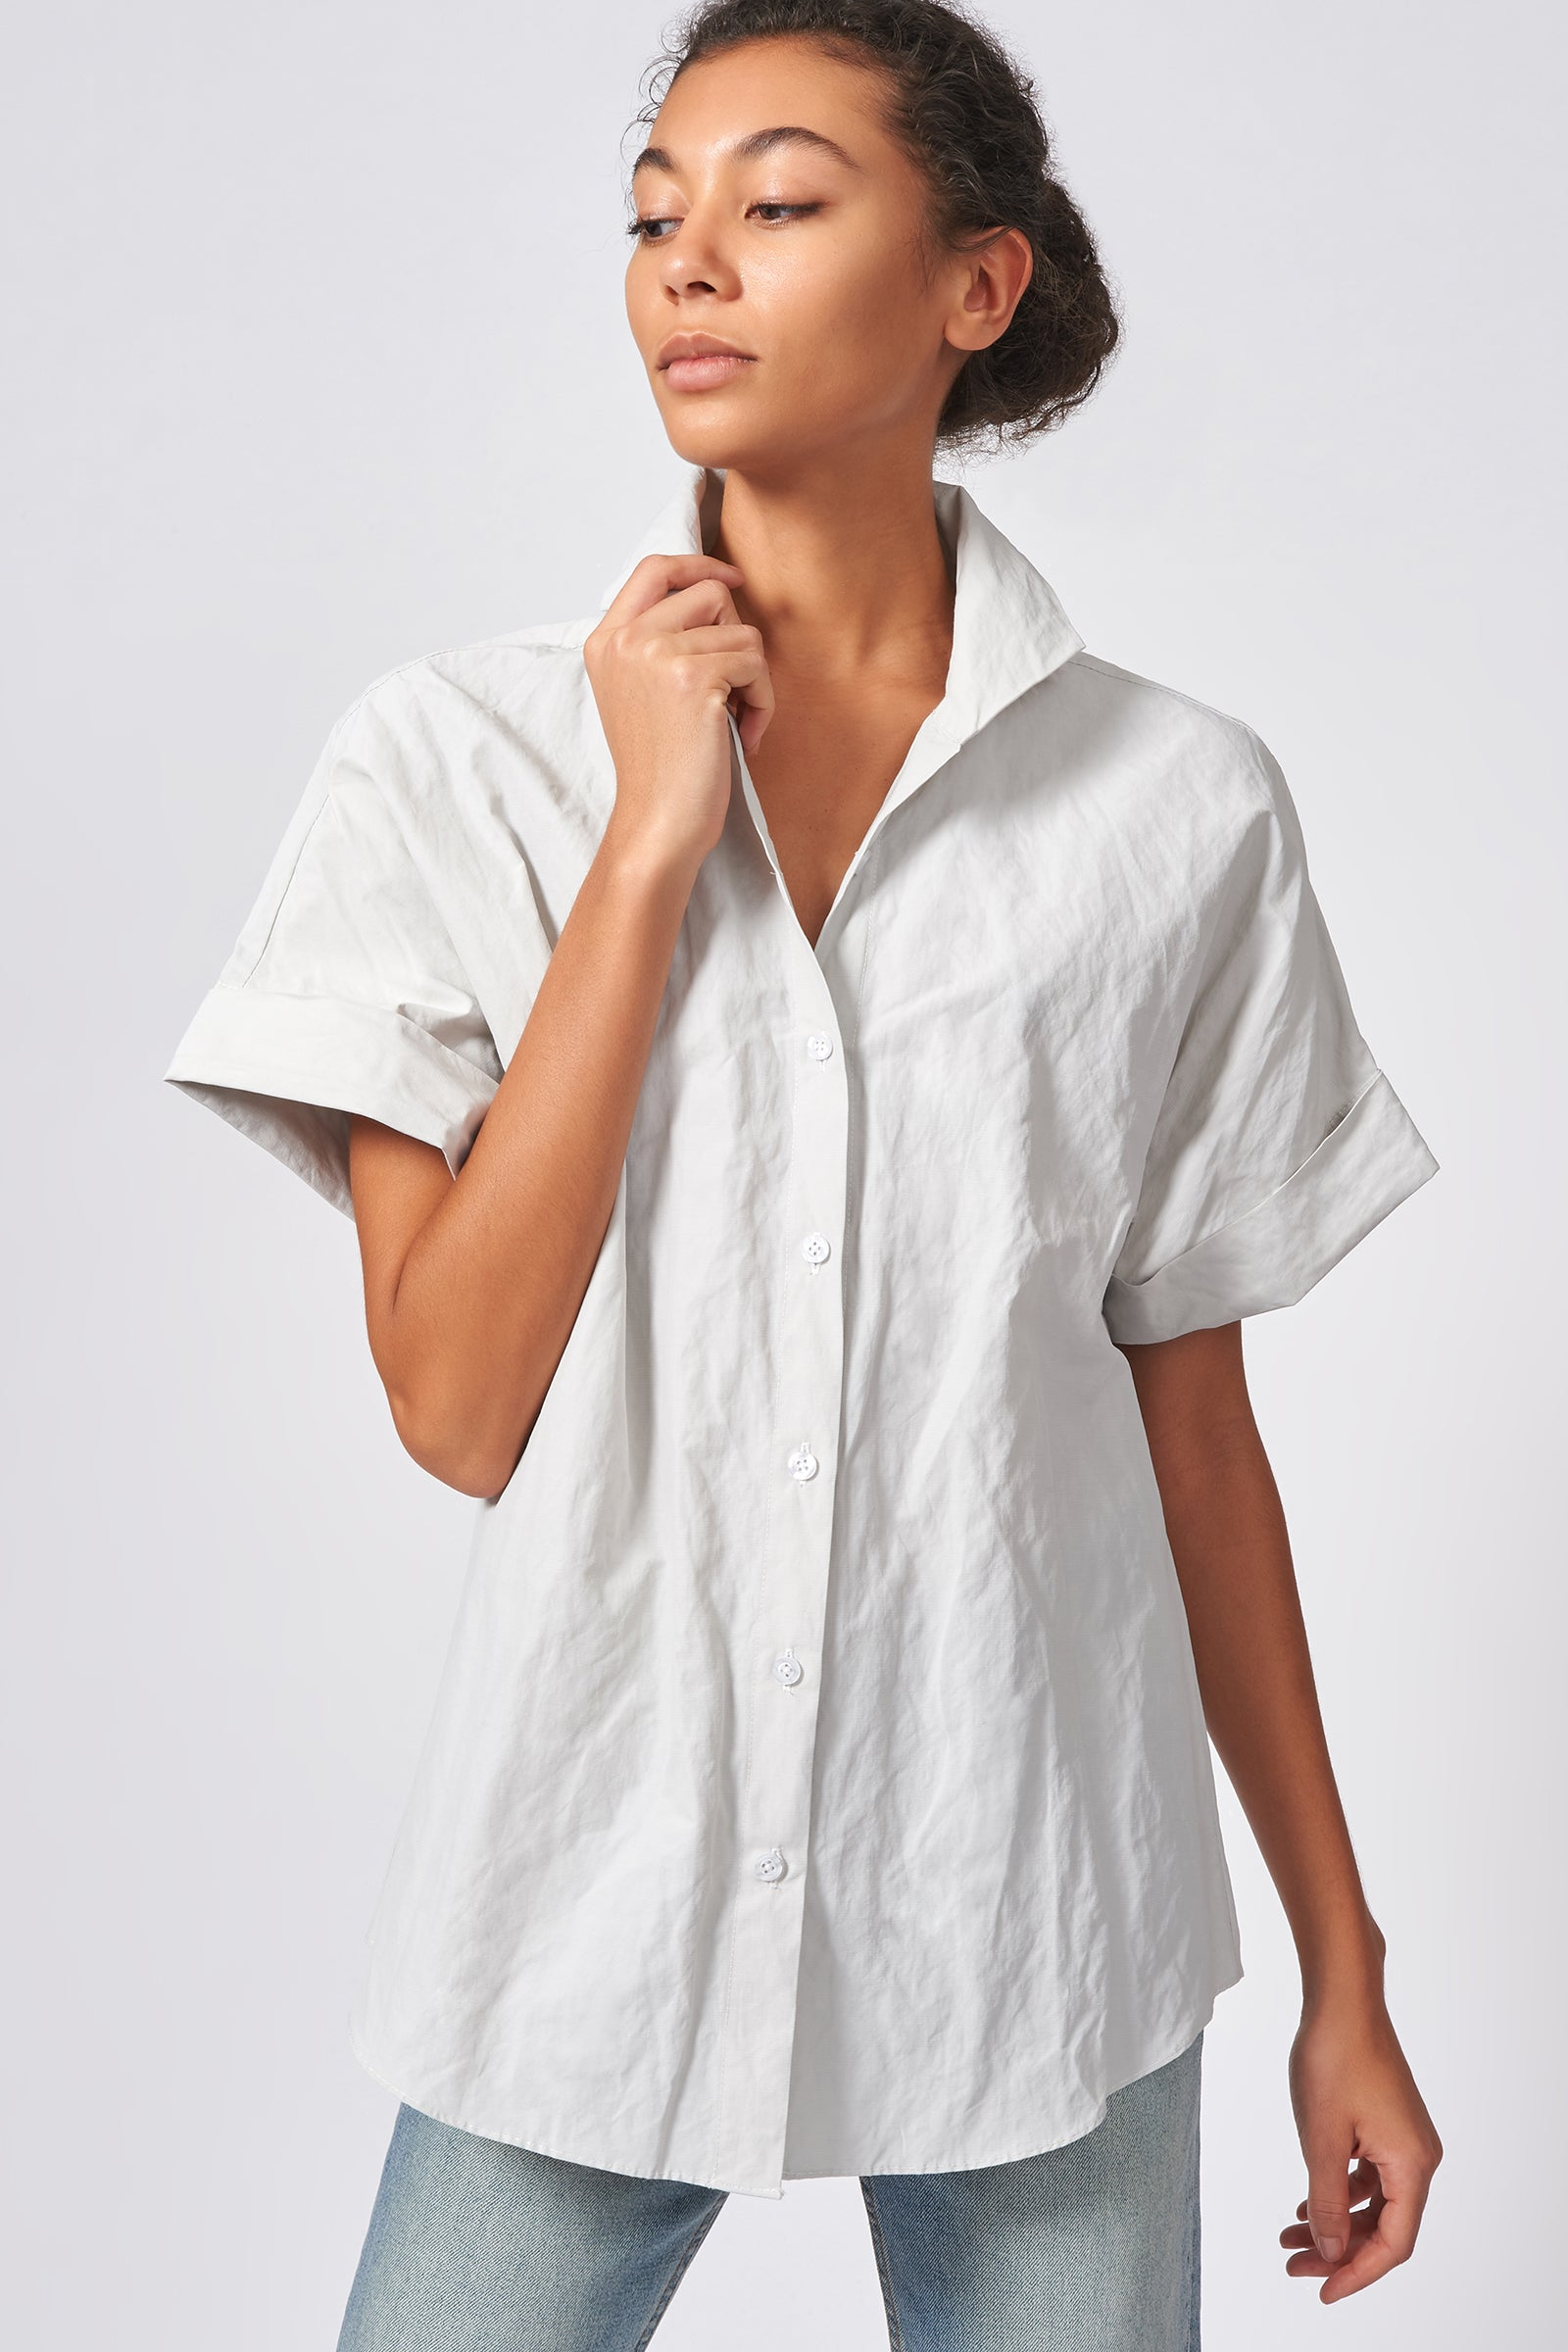 Kal Rieman Kimono Shirt in Stone Cotton Nylon on Model Front View